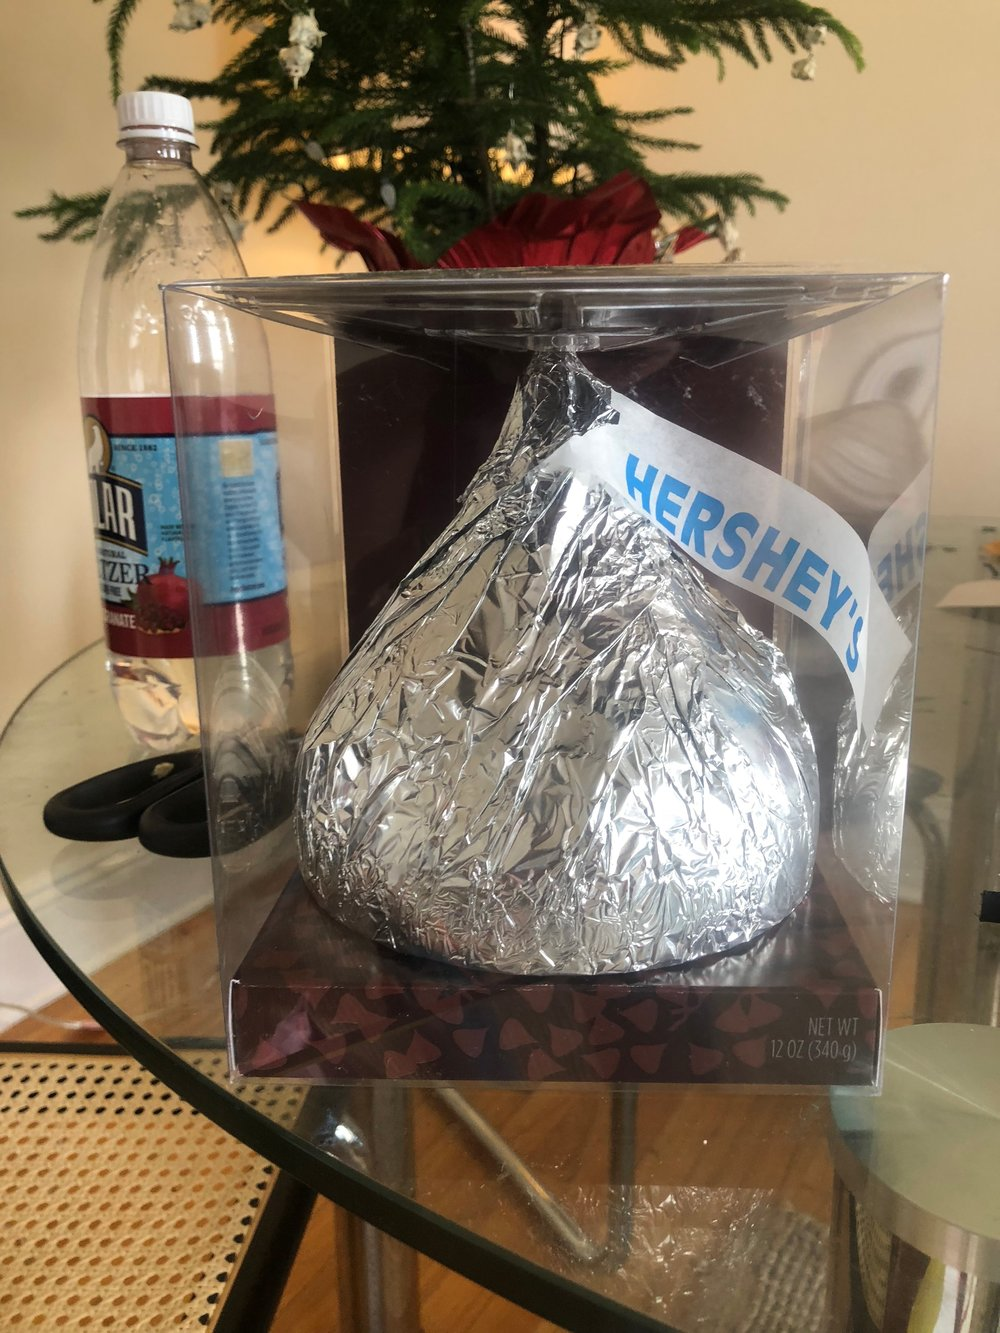 Look at your massive Hershey Kiss and admire how awesome it is.